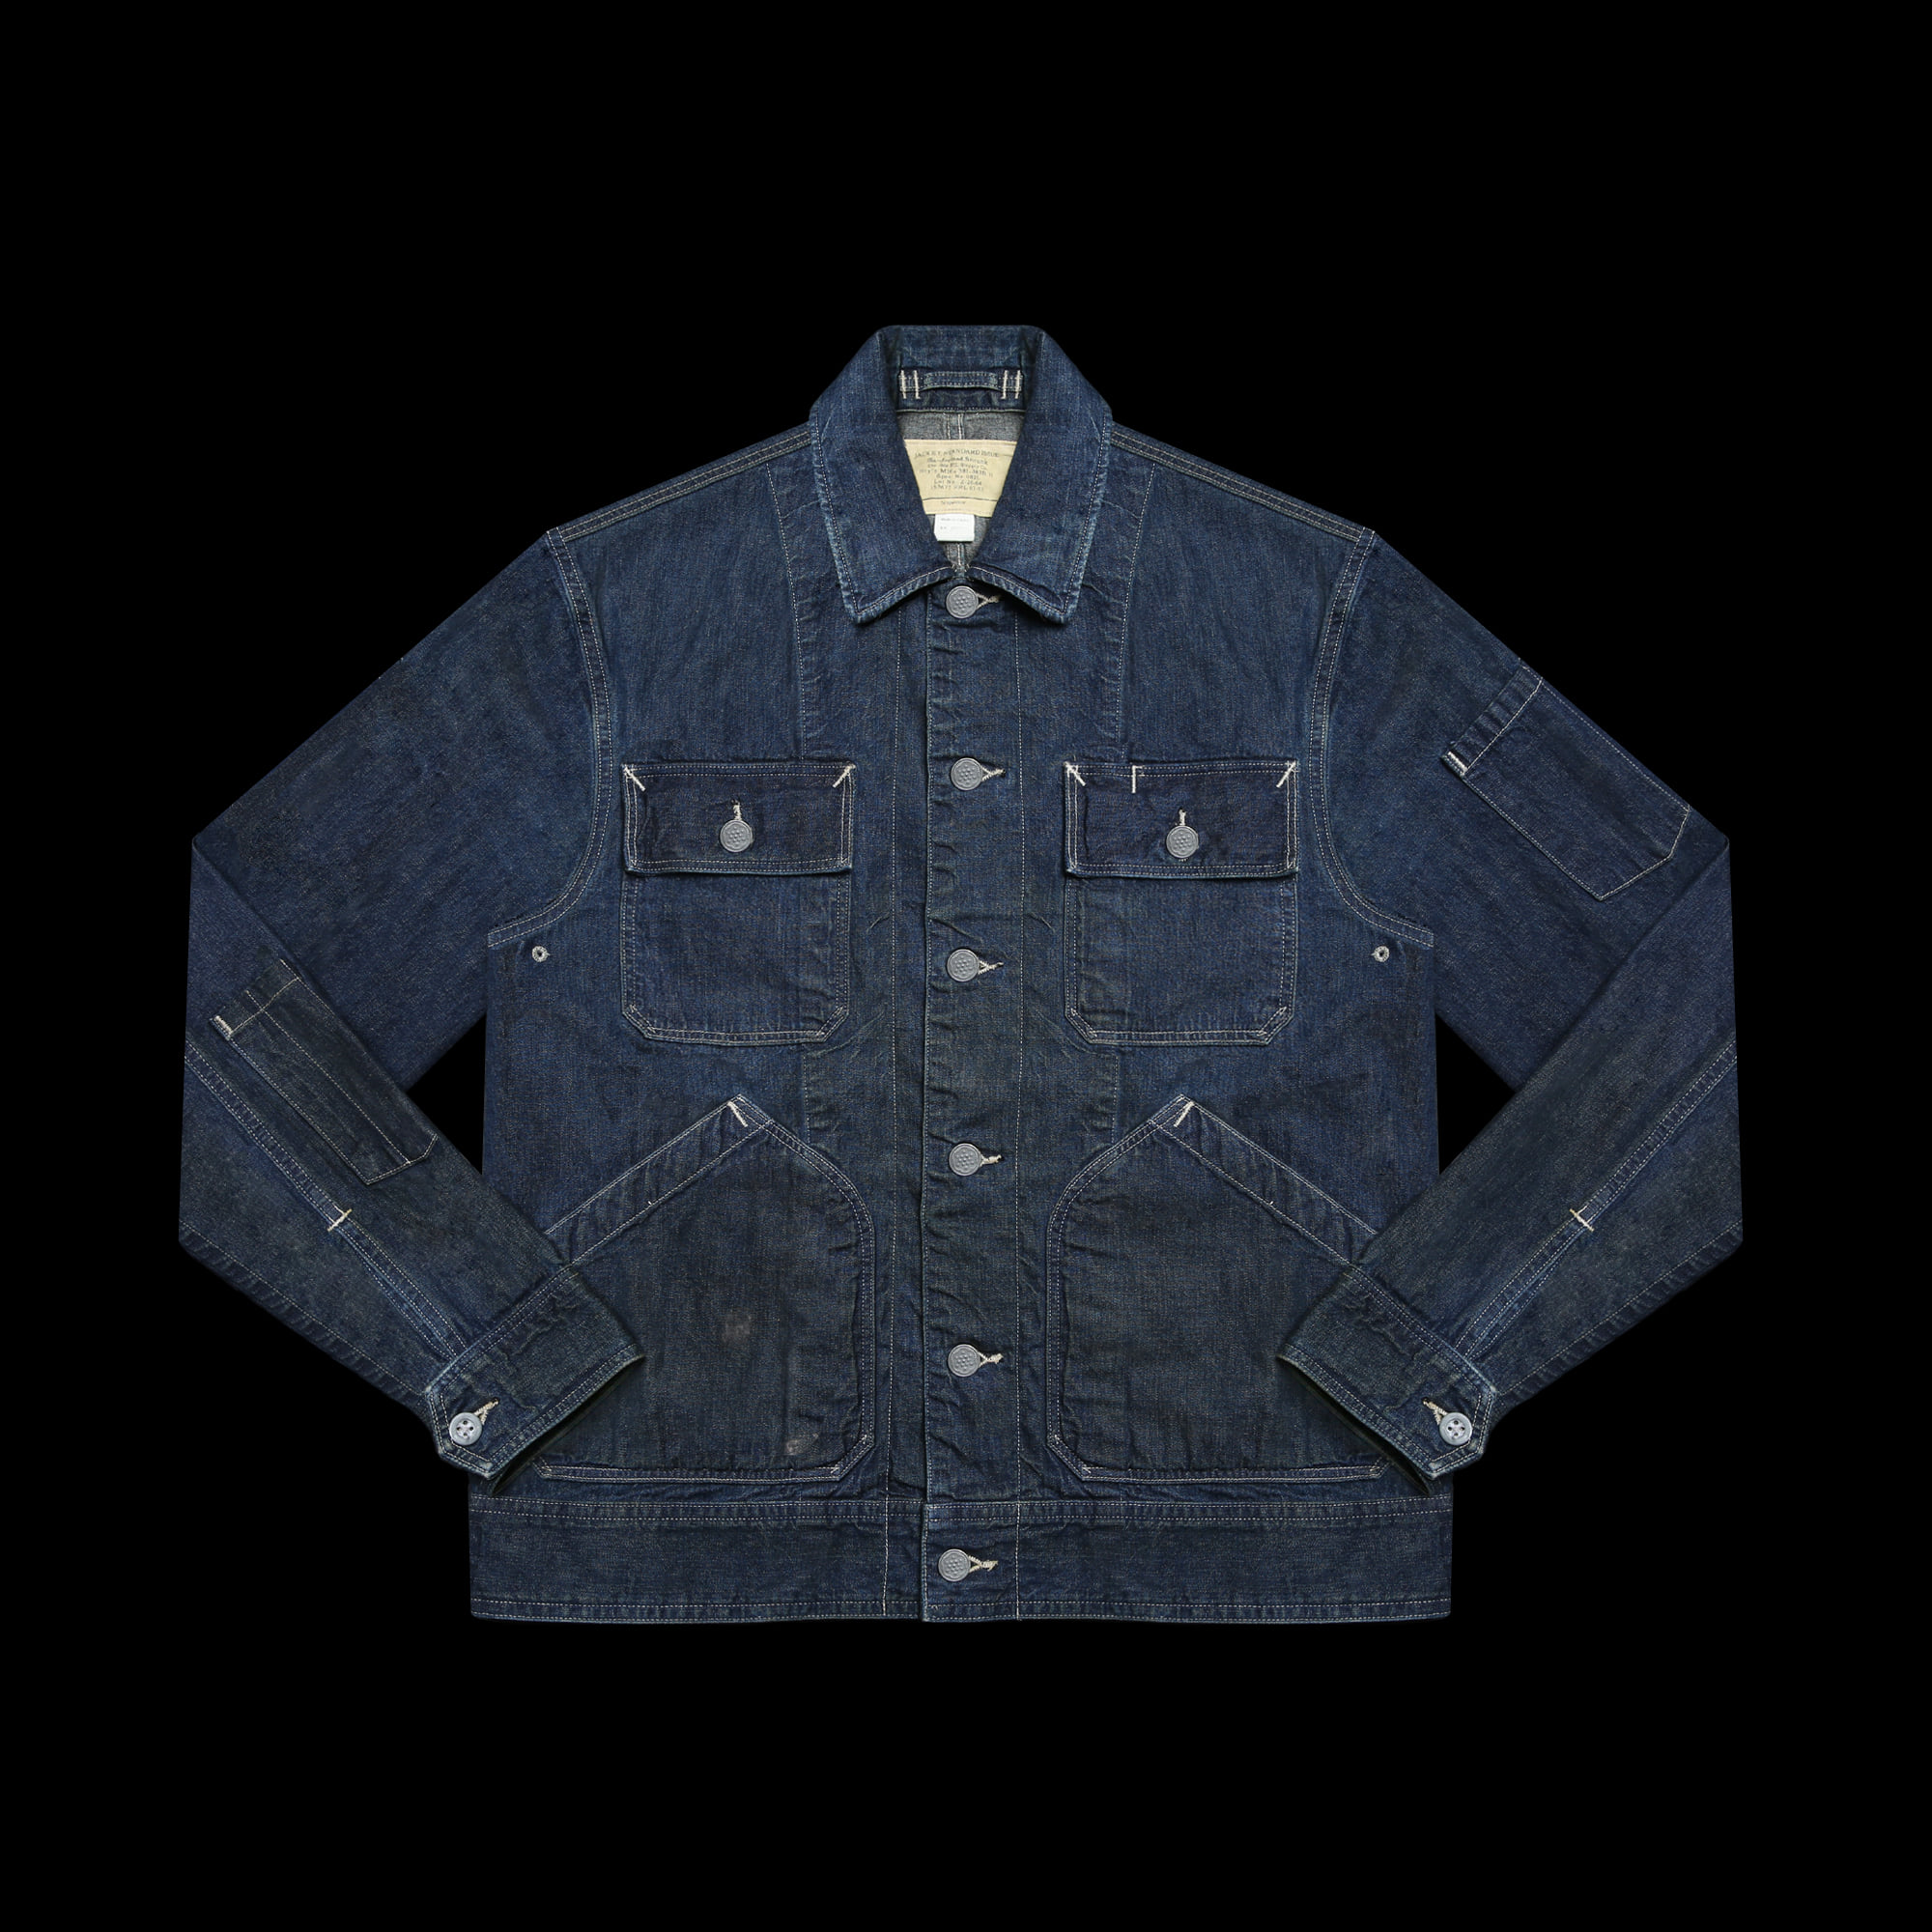 RRLSTANDARD DENIM JACKET